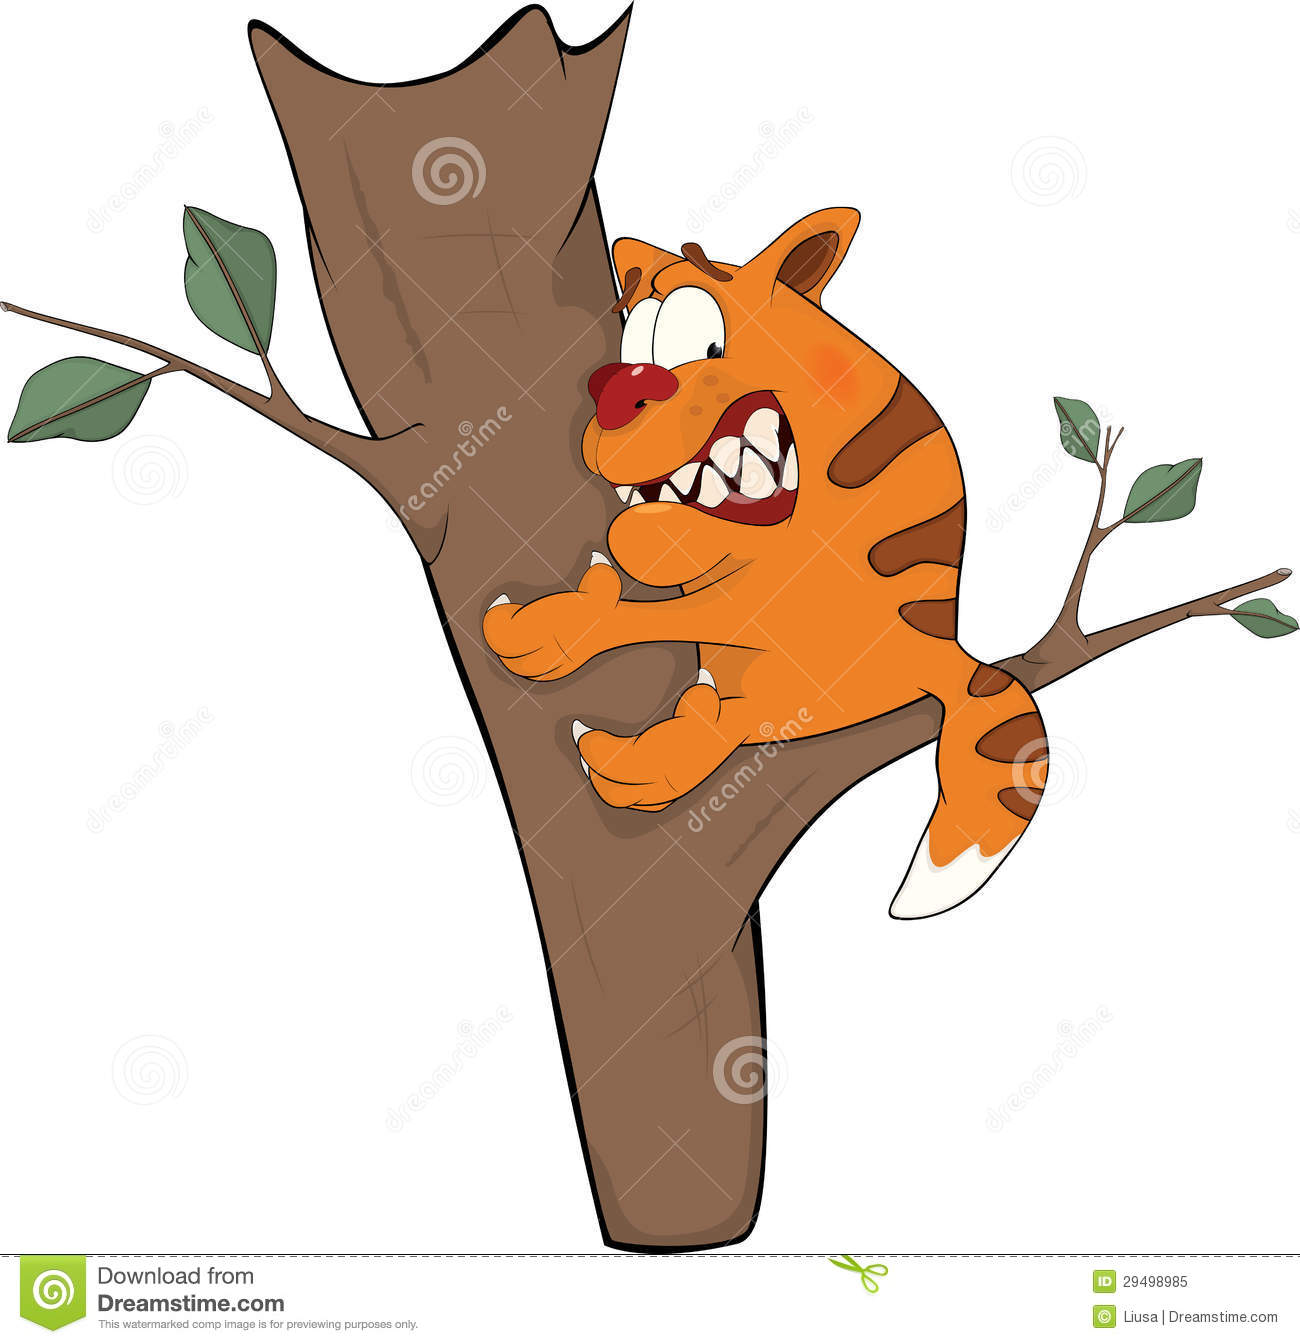 Cat Dangling From Tree Free Cartoon Image